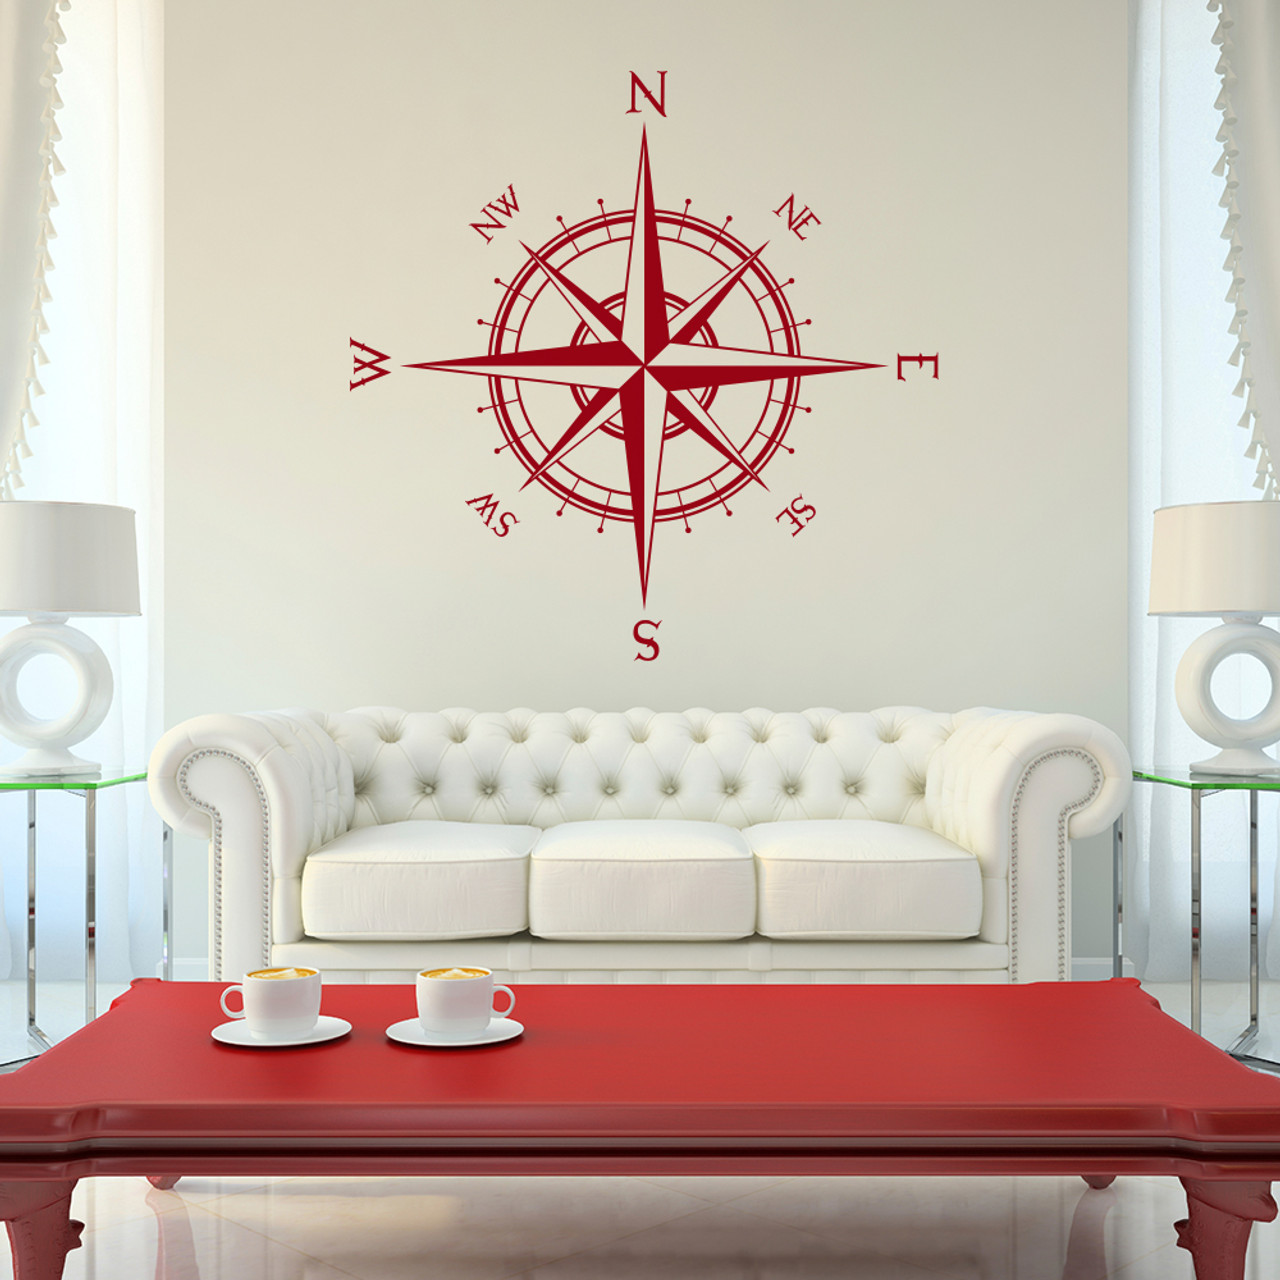 The Captain compass rose vinyl wall decal in dark red